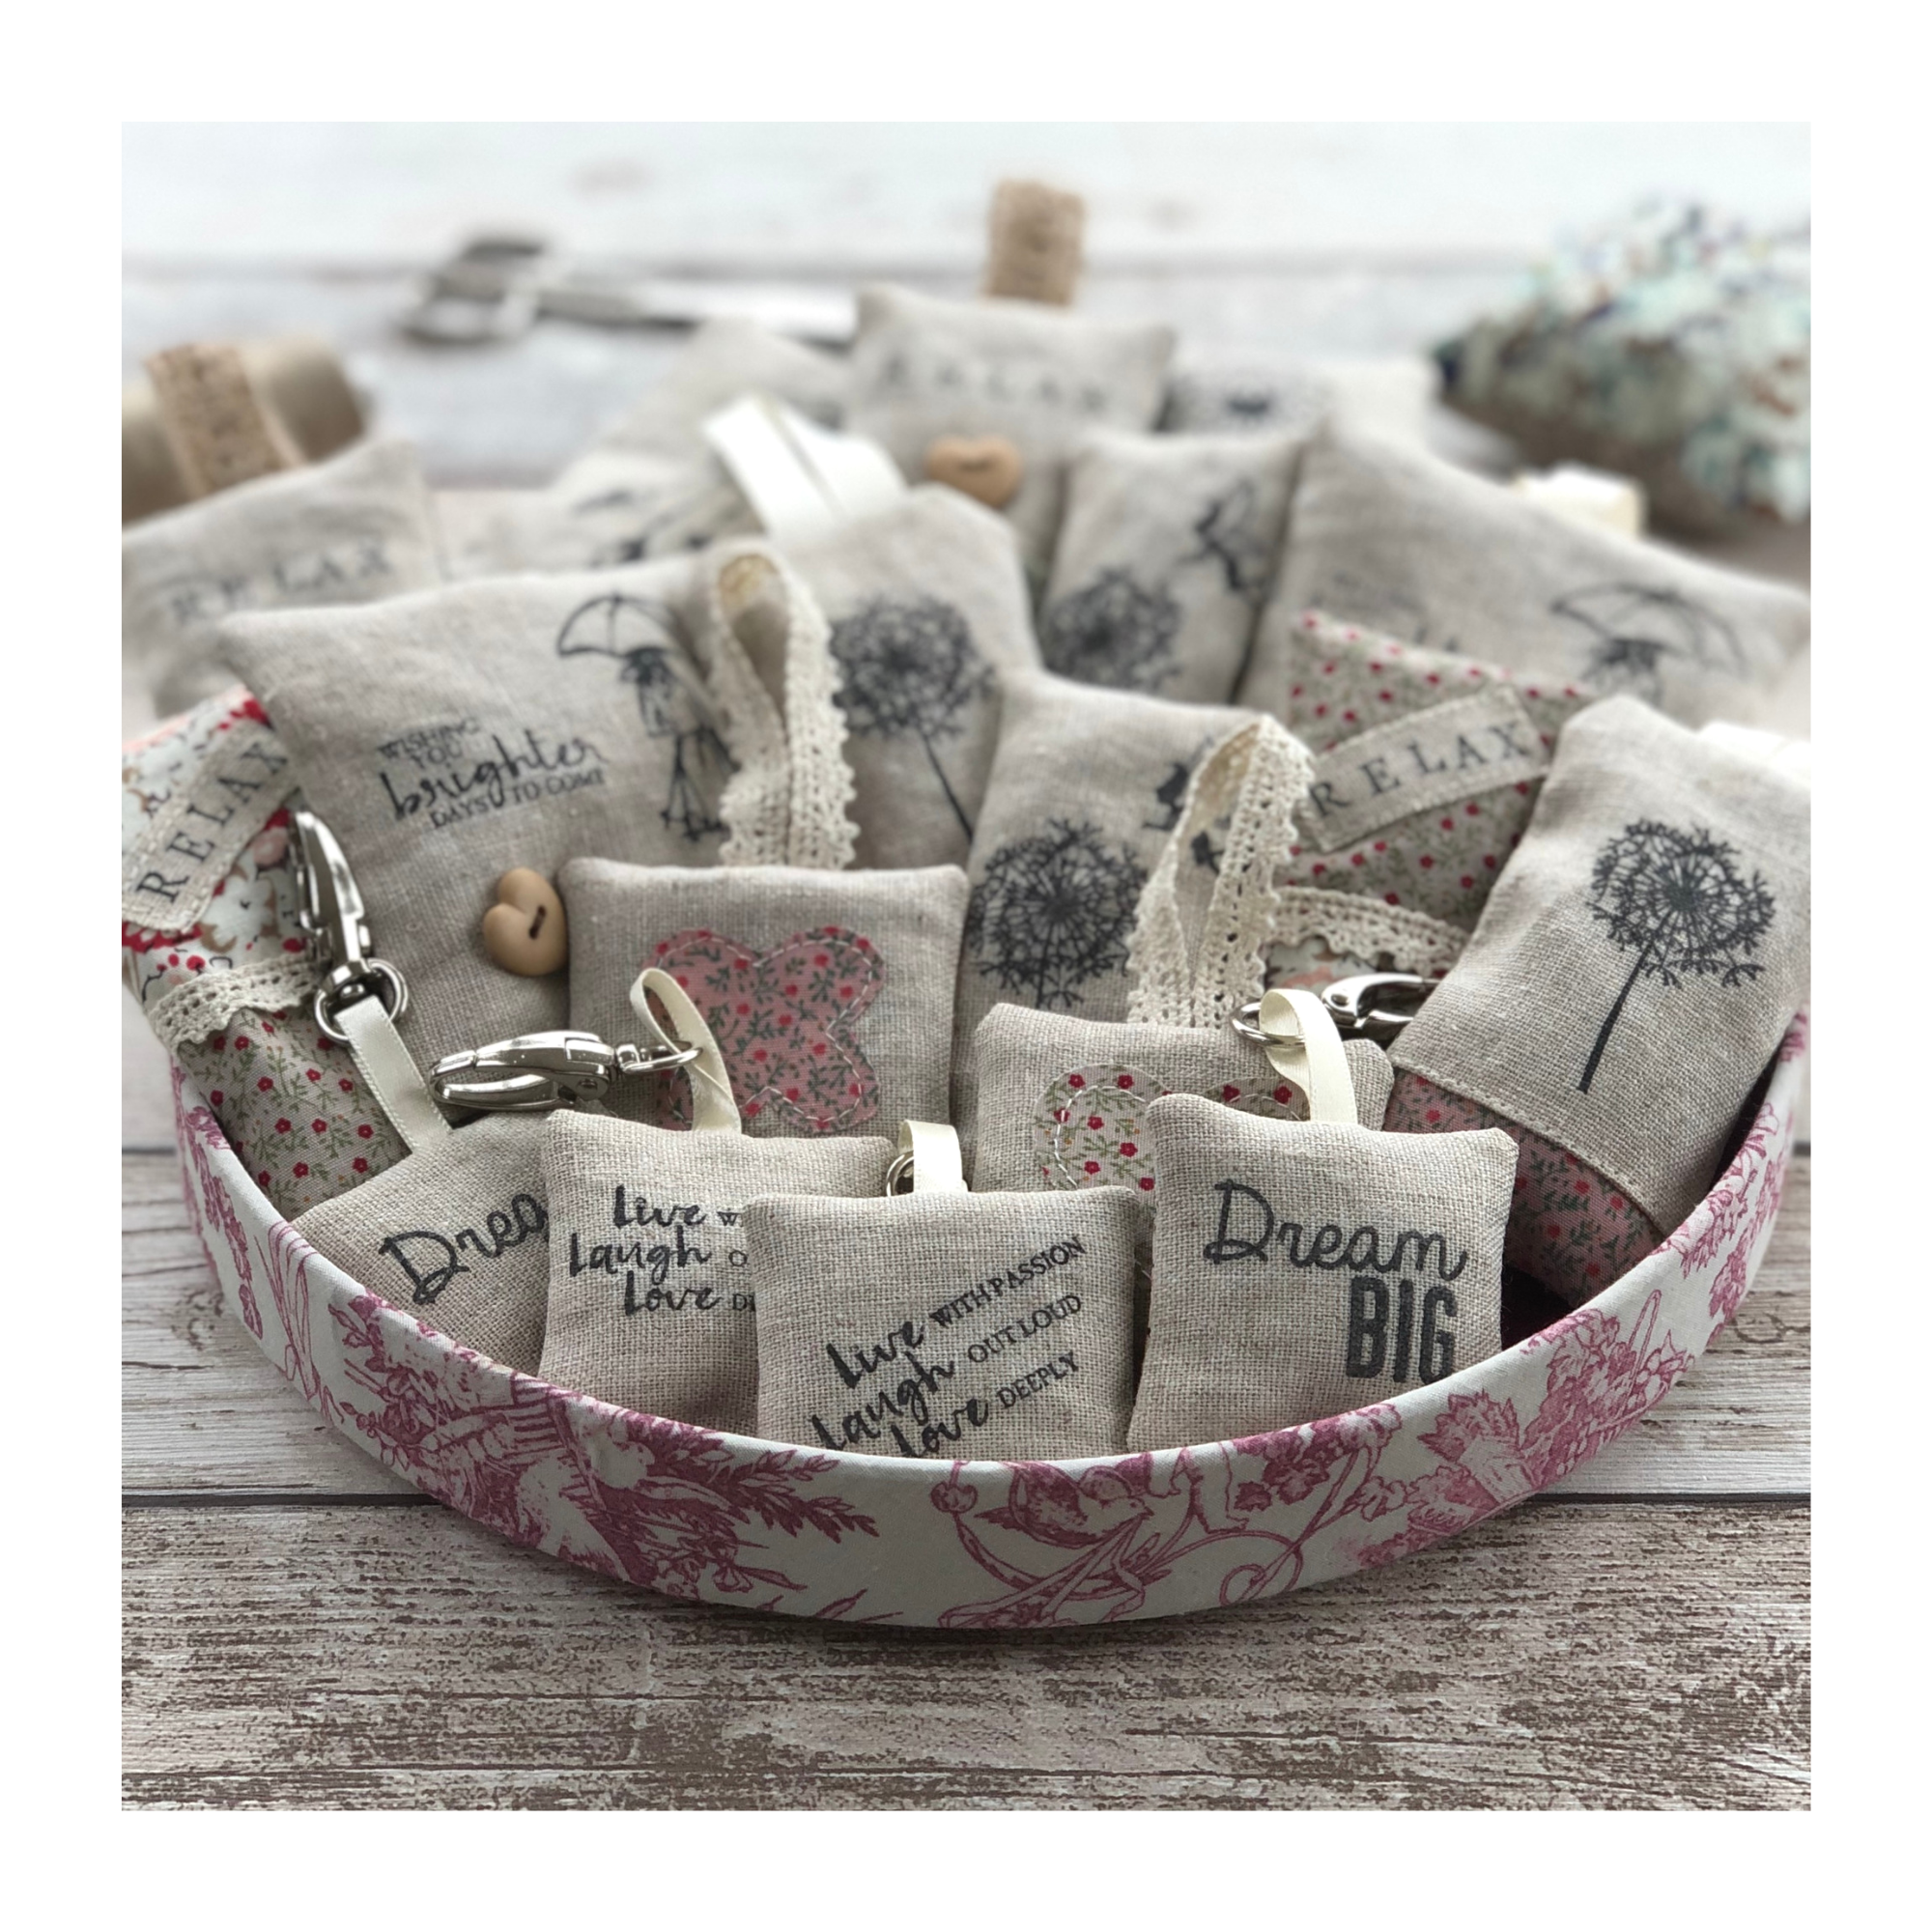 Mini lavender pouches made in linen with stamped images and contasting cotton fabric